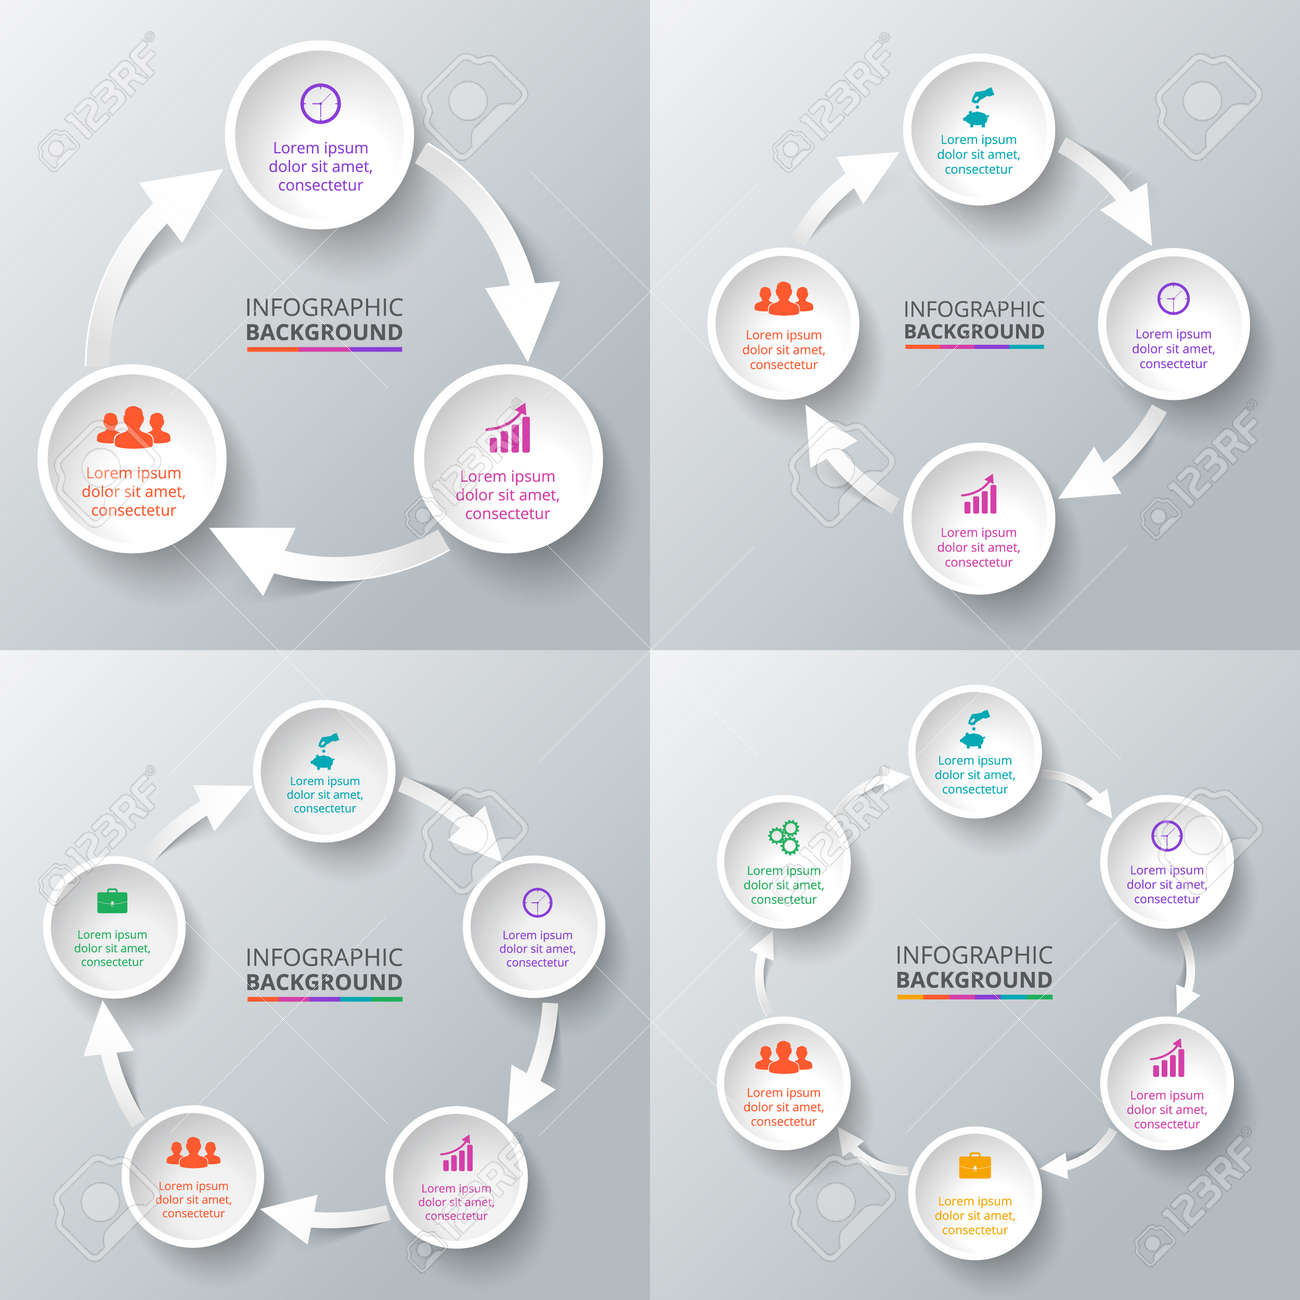 Process cycling arrow by arrow royalty free stock images image - Vector Vector Circle Arrows For Infographic Template For Cycle Diagram Graph Presentation And Round Chart Business Concept With 3 4 5 And 6 Options